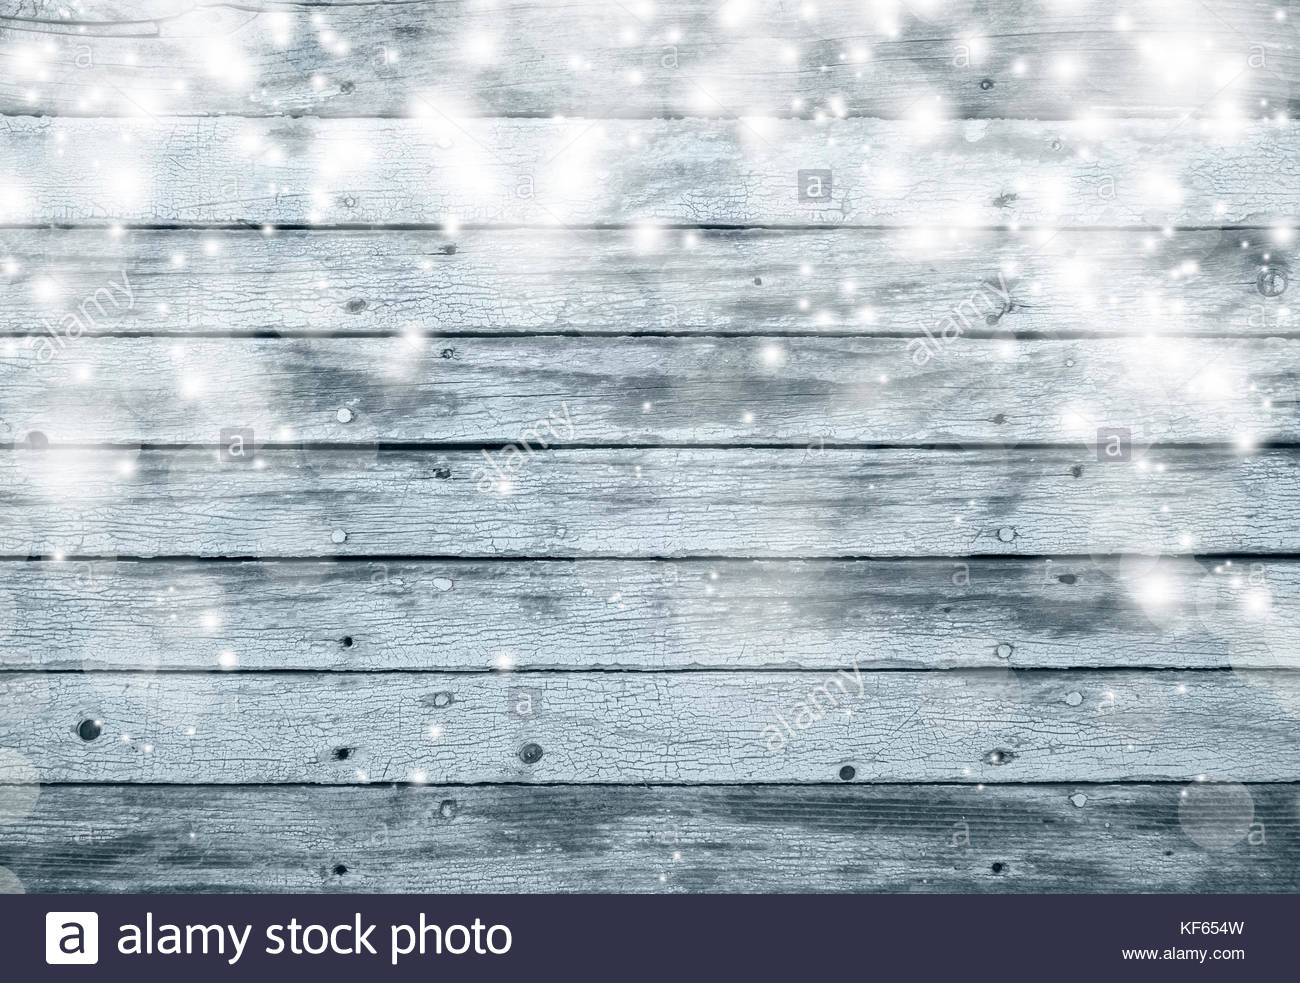 Textured wooden boards with illustrated abstract blurred white snowflakes, copy space background. Winter holiday - Stock Image